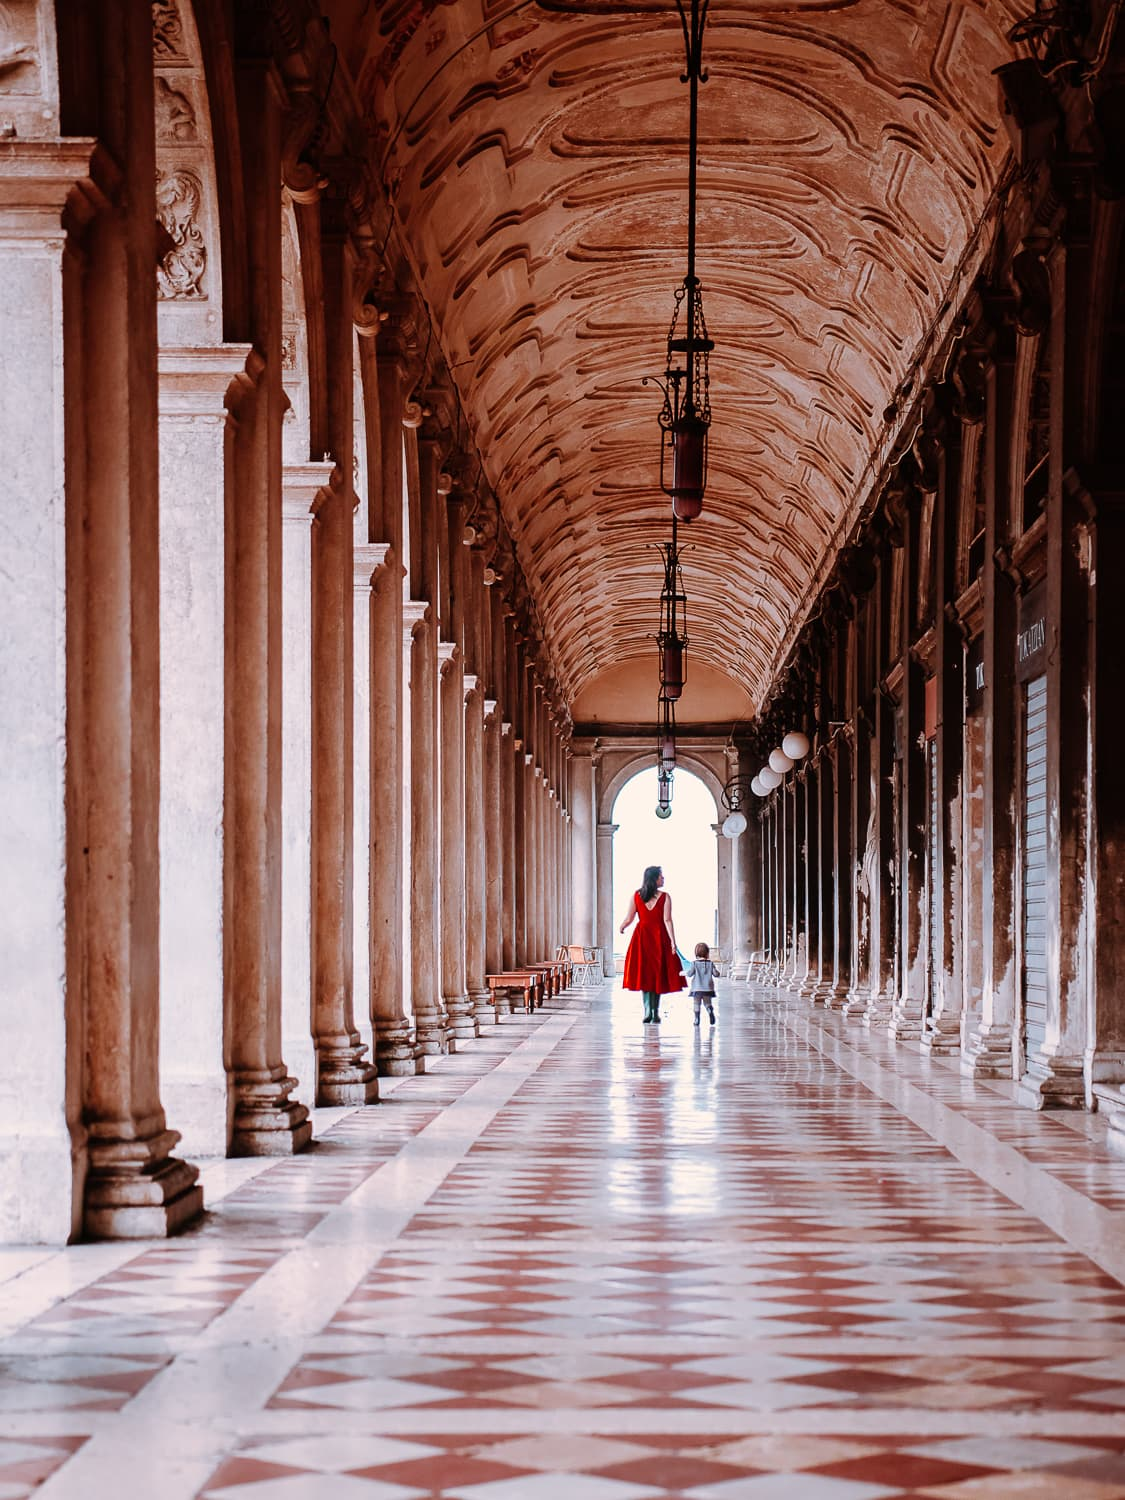 Beautiful tiled walkway with columns in Piazza San Marco in Venice, Italy.